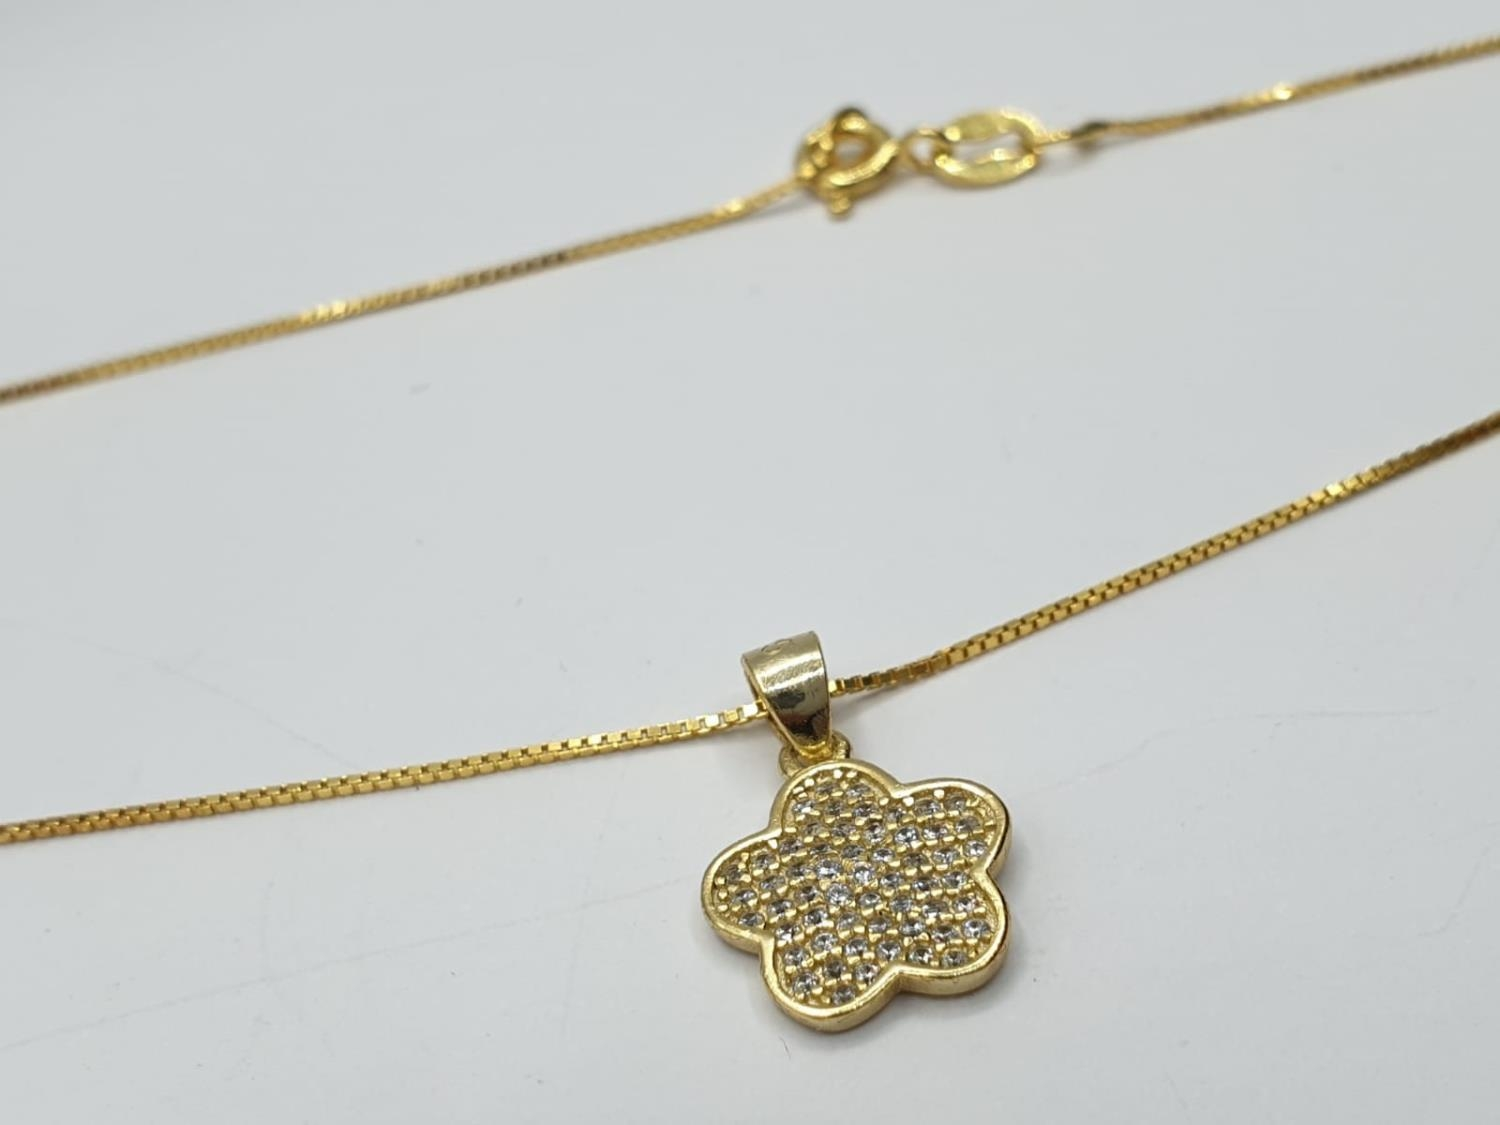 Gold plated silver set of PENDANT and matching EARRINGS. 3.7g 40cm chain. - Image 5 of 7